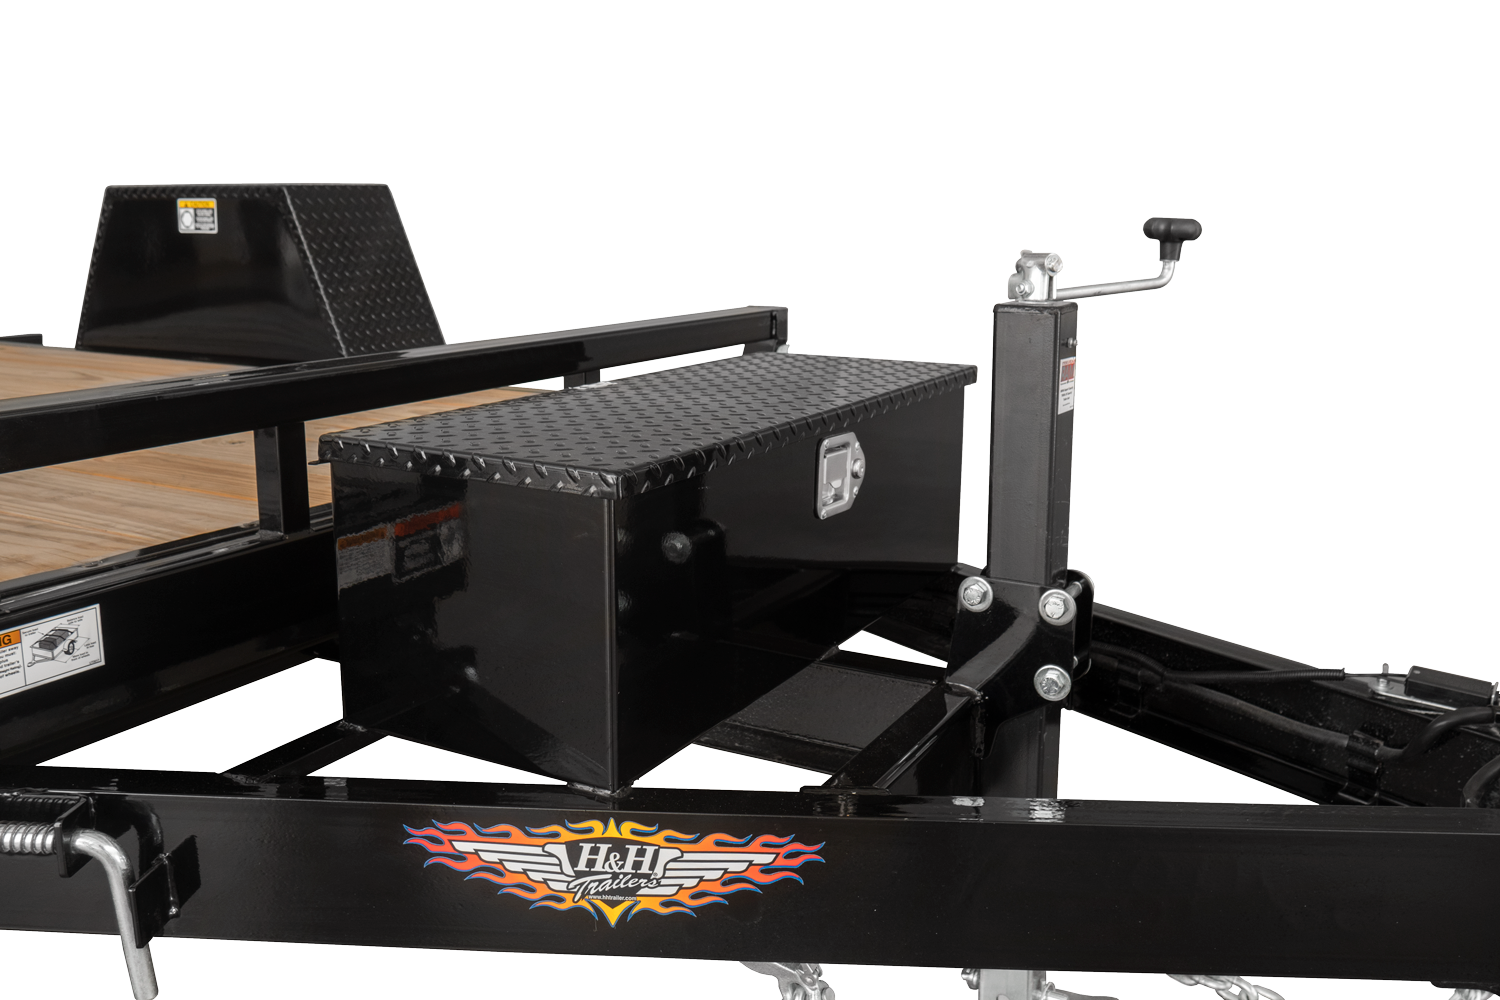 Use the tongue-mounted toolbox for storage on the Single Axle Gravity Tilt